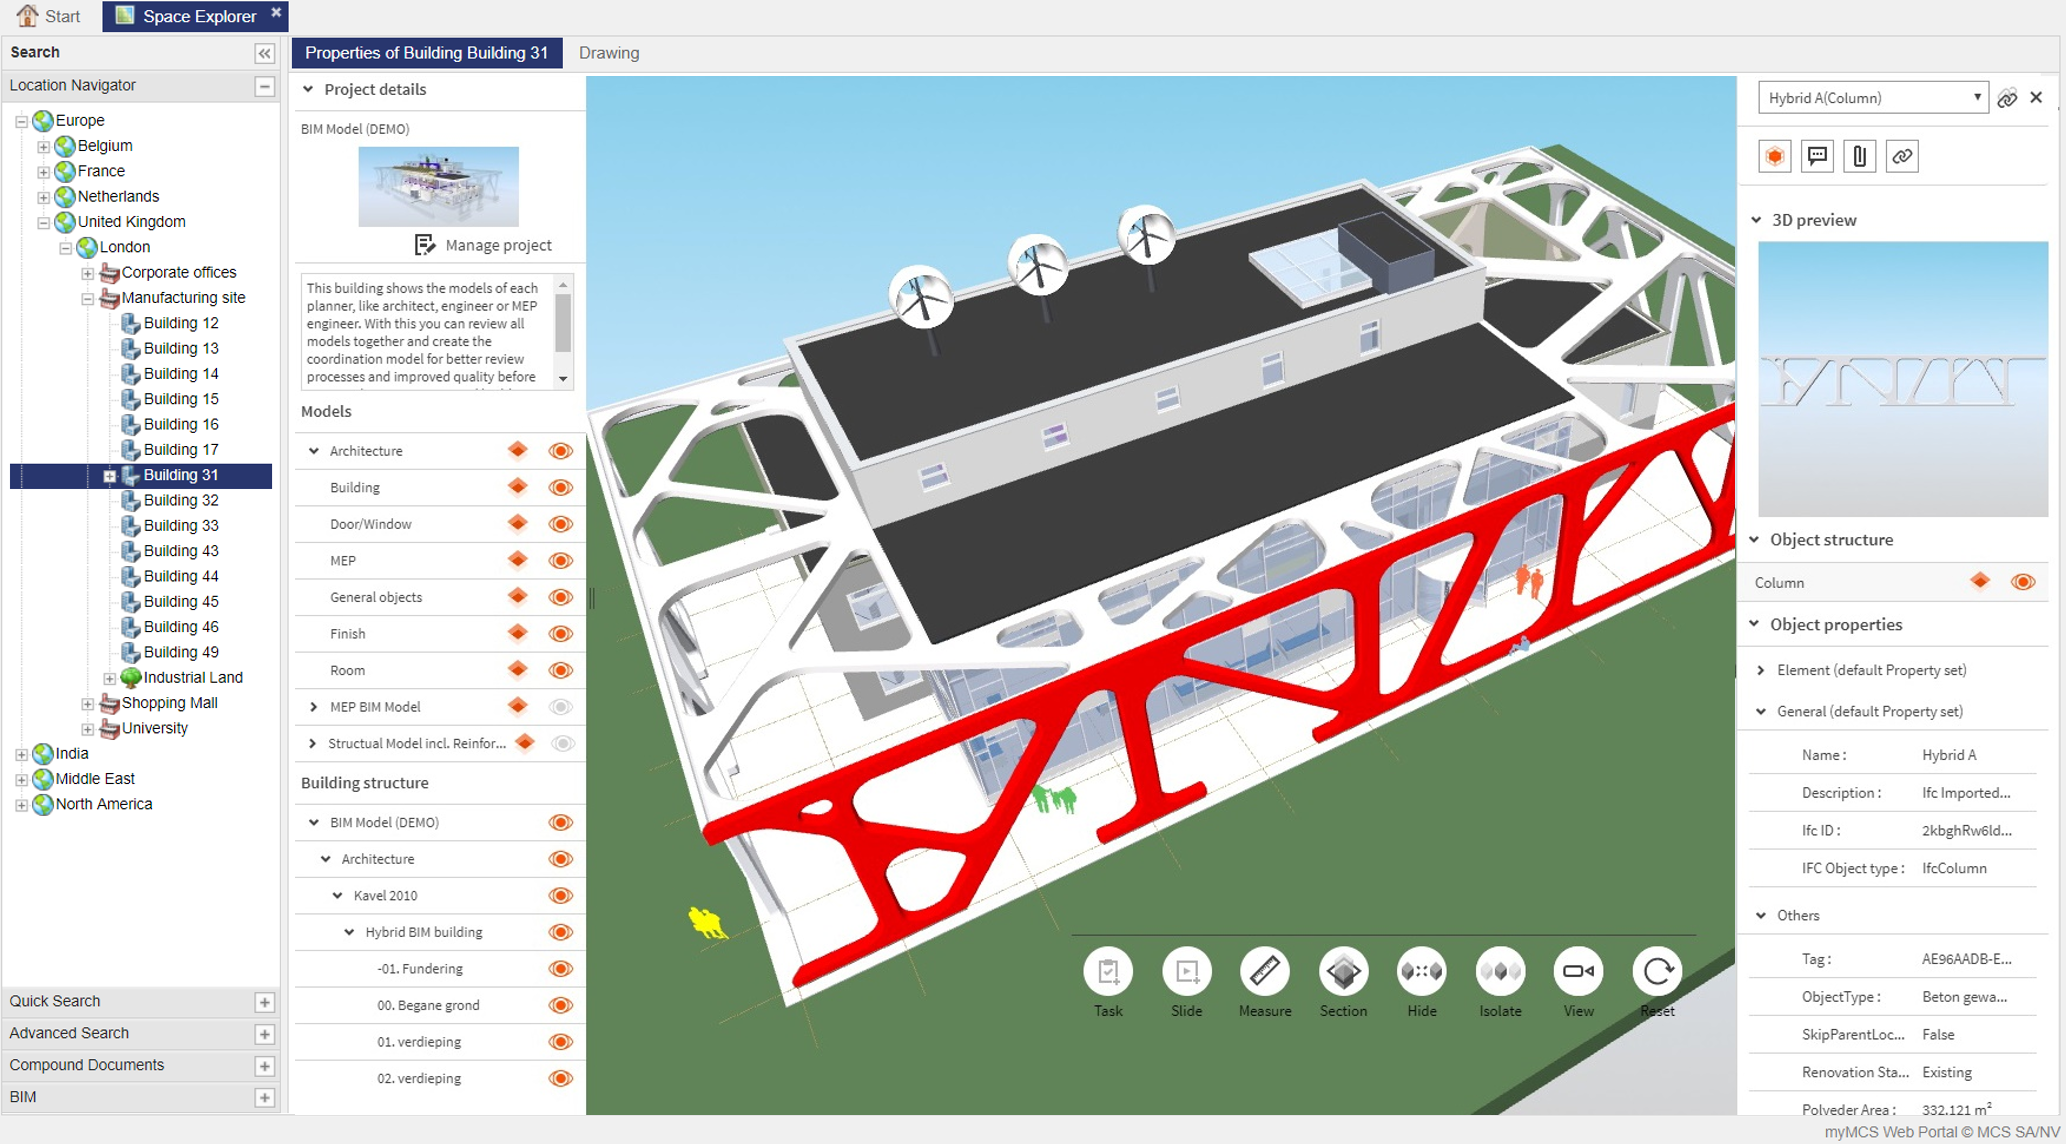 BIM screenshot